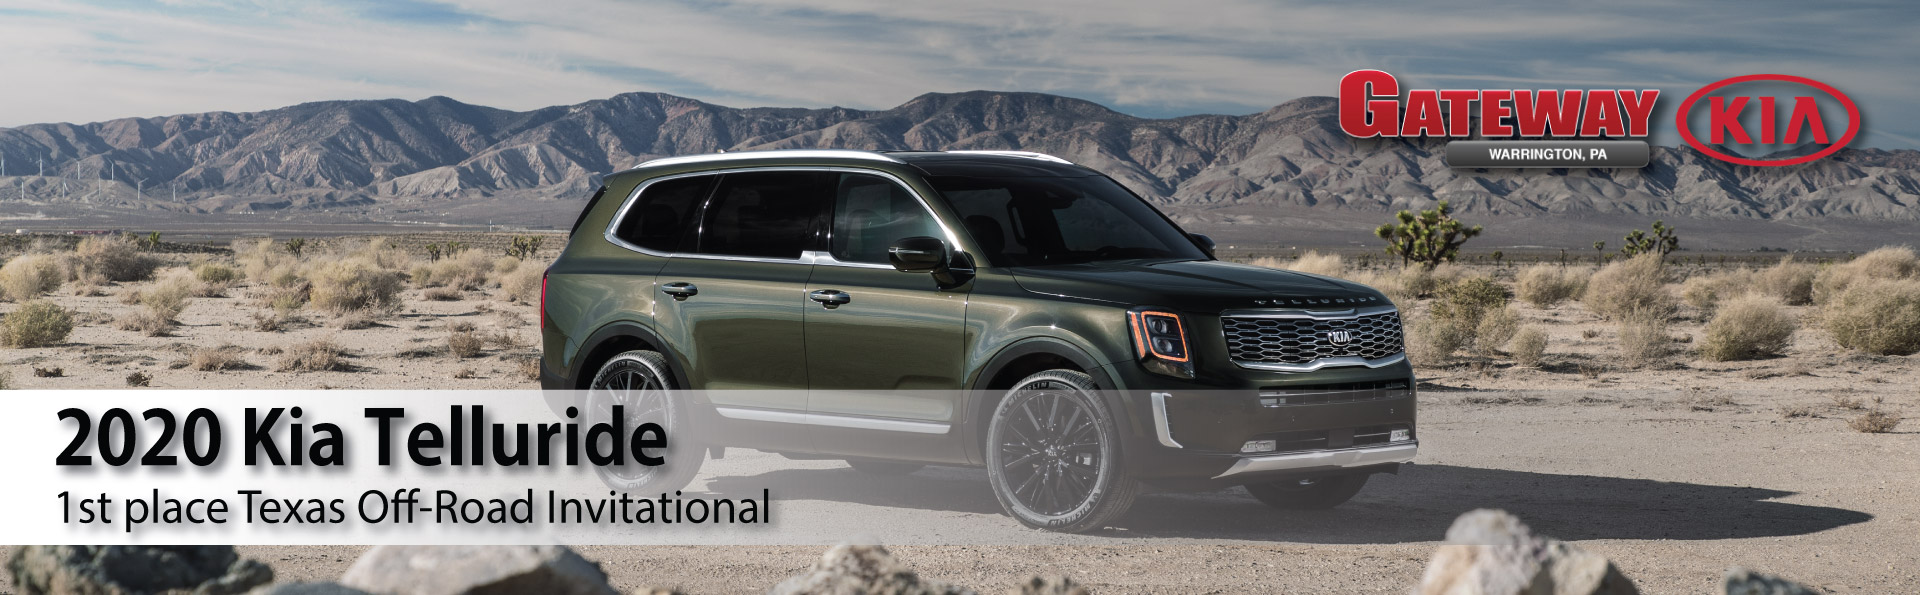 2020 Kia Telluride: Takes 1st Texas Off-Road Invitational